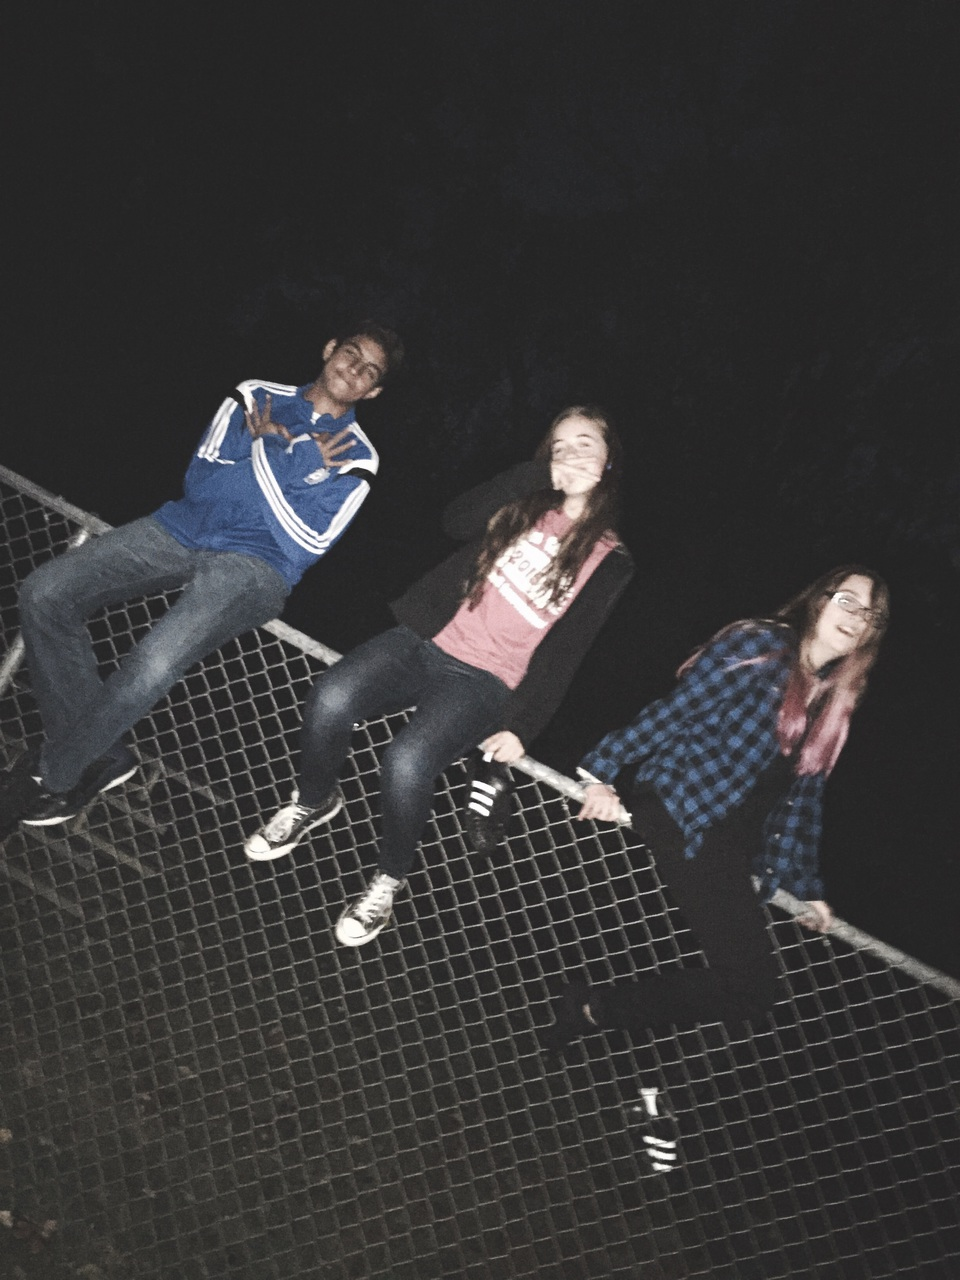 aesthetic, best friends, blog, dark, explore, fence, flannel, friends, girl, grunge, hipster, indie, moon, night, pale, photography, plaid, punk, reckless, shoes, style, teenager, teens, tumblr, vintage, acidic